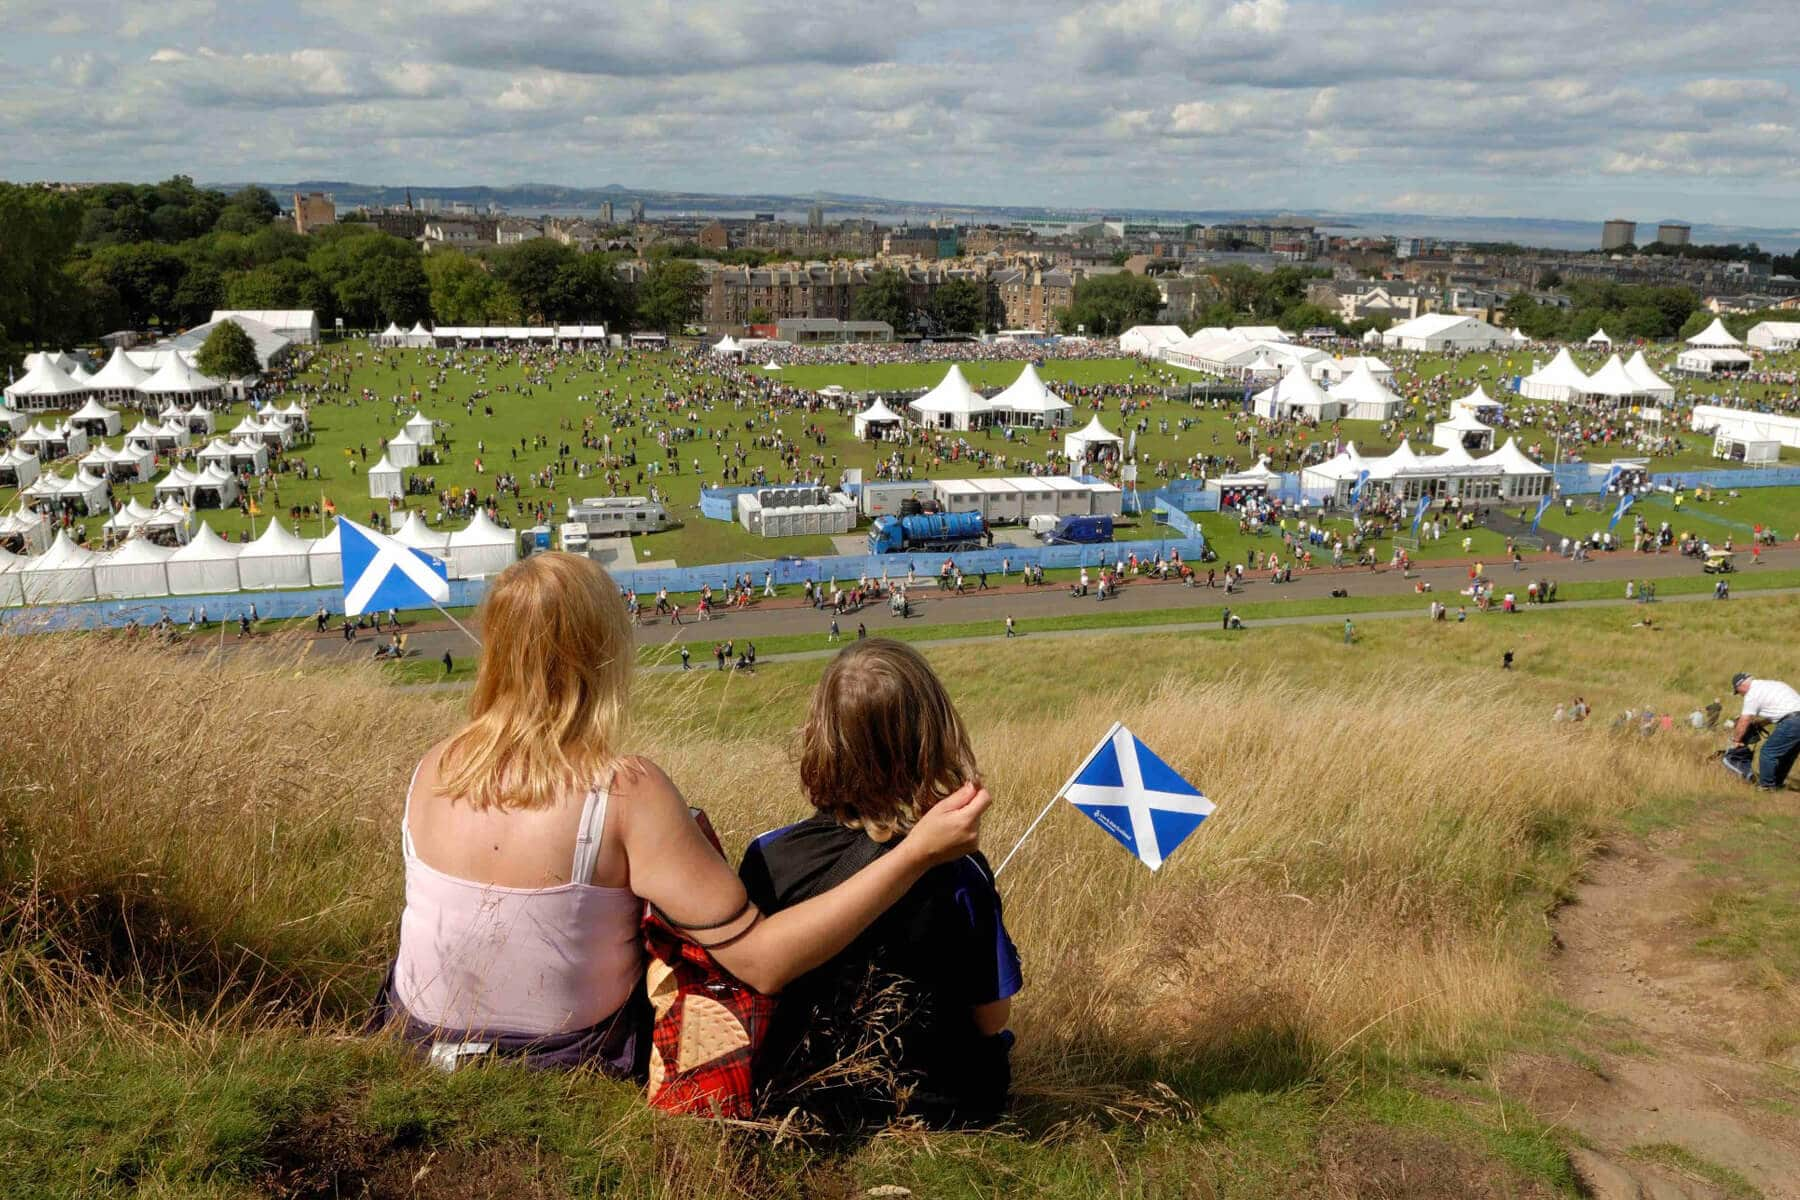 A photo of an woman and child holding small Scottish saltire flags, sitting on a hillside watching the crowds and tents of The Gathering 2009